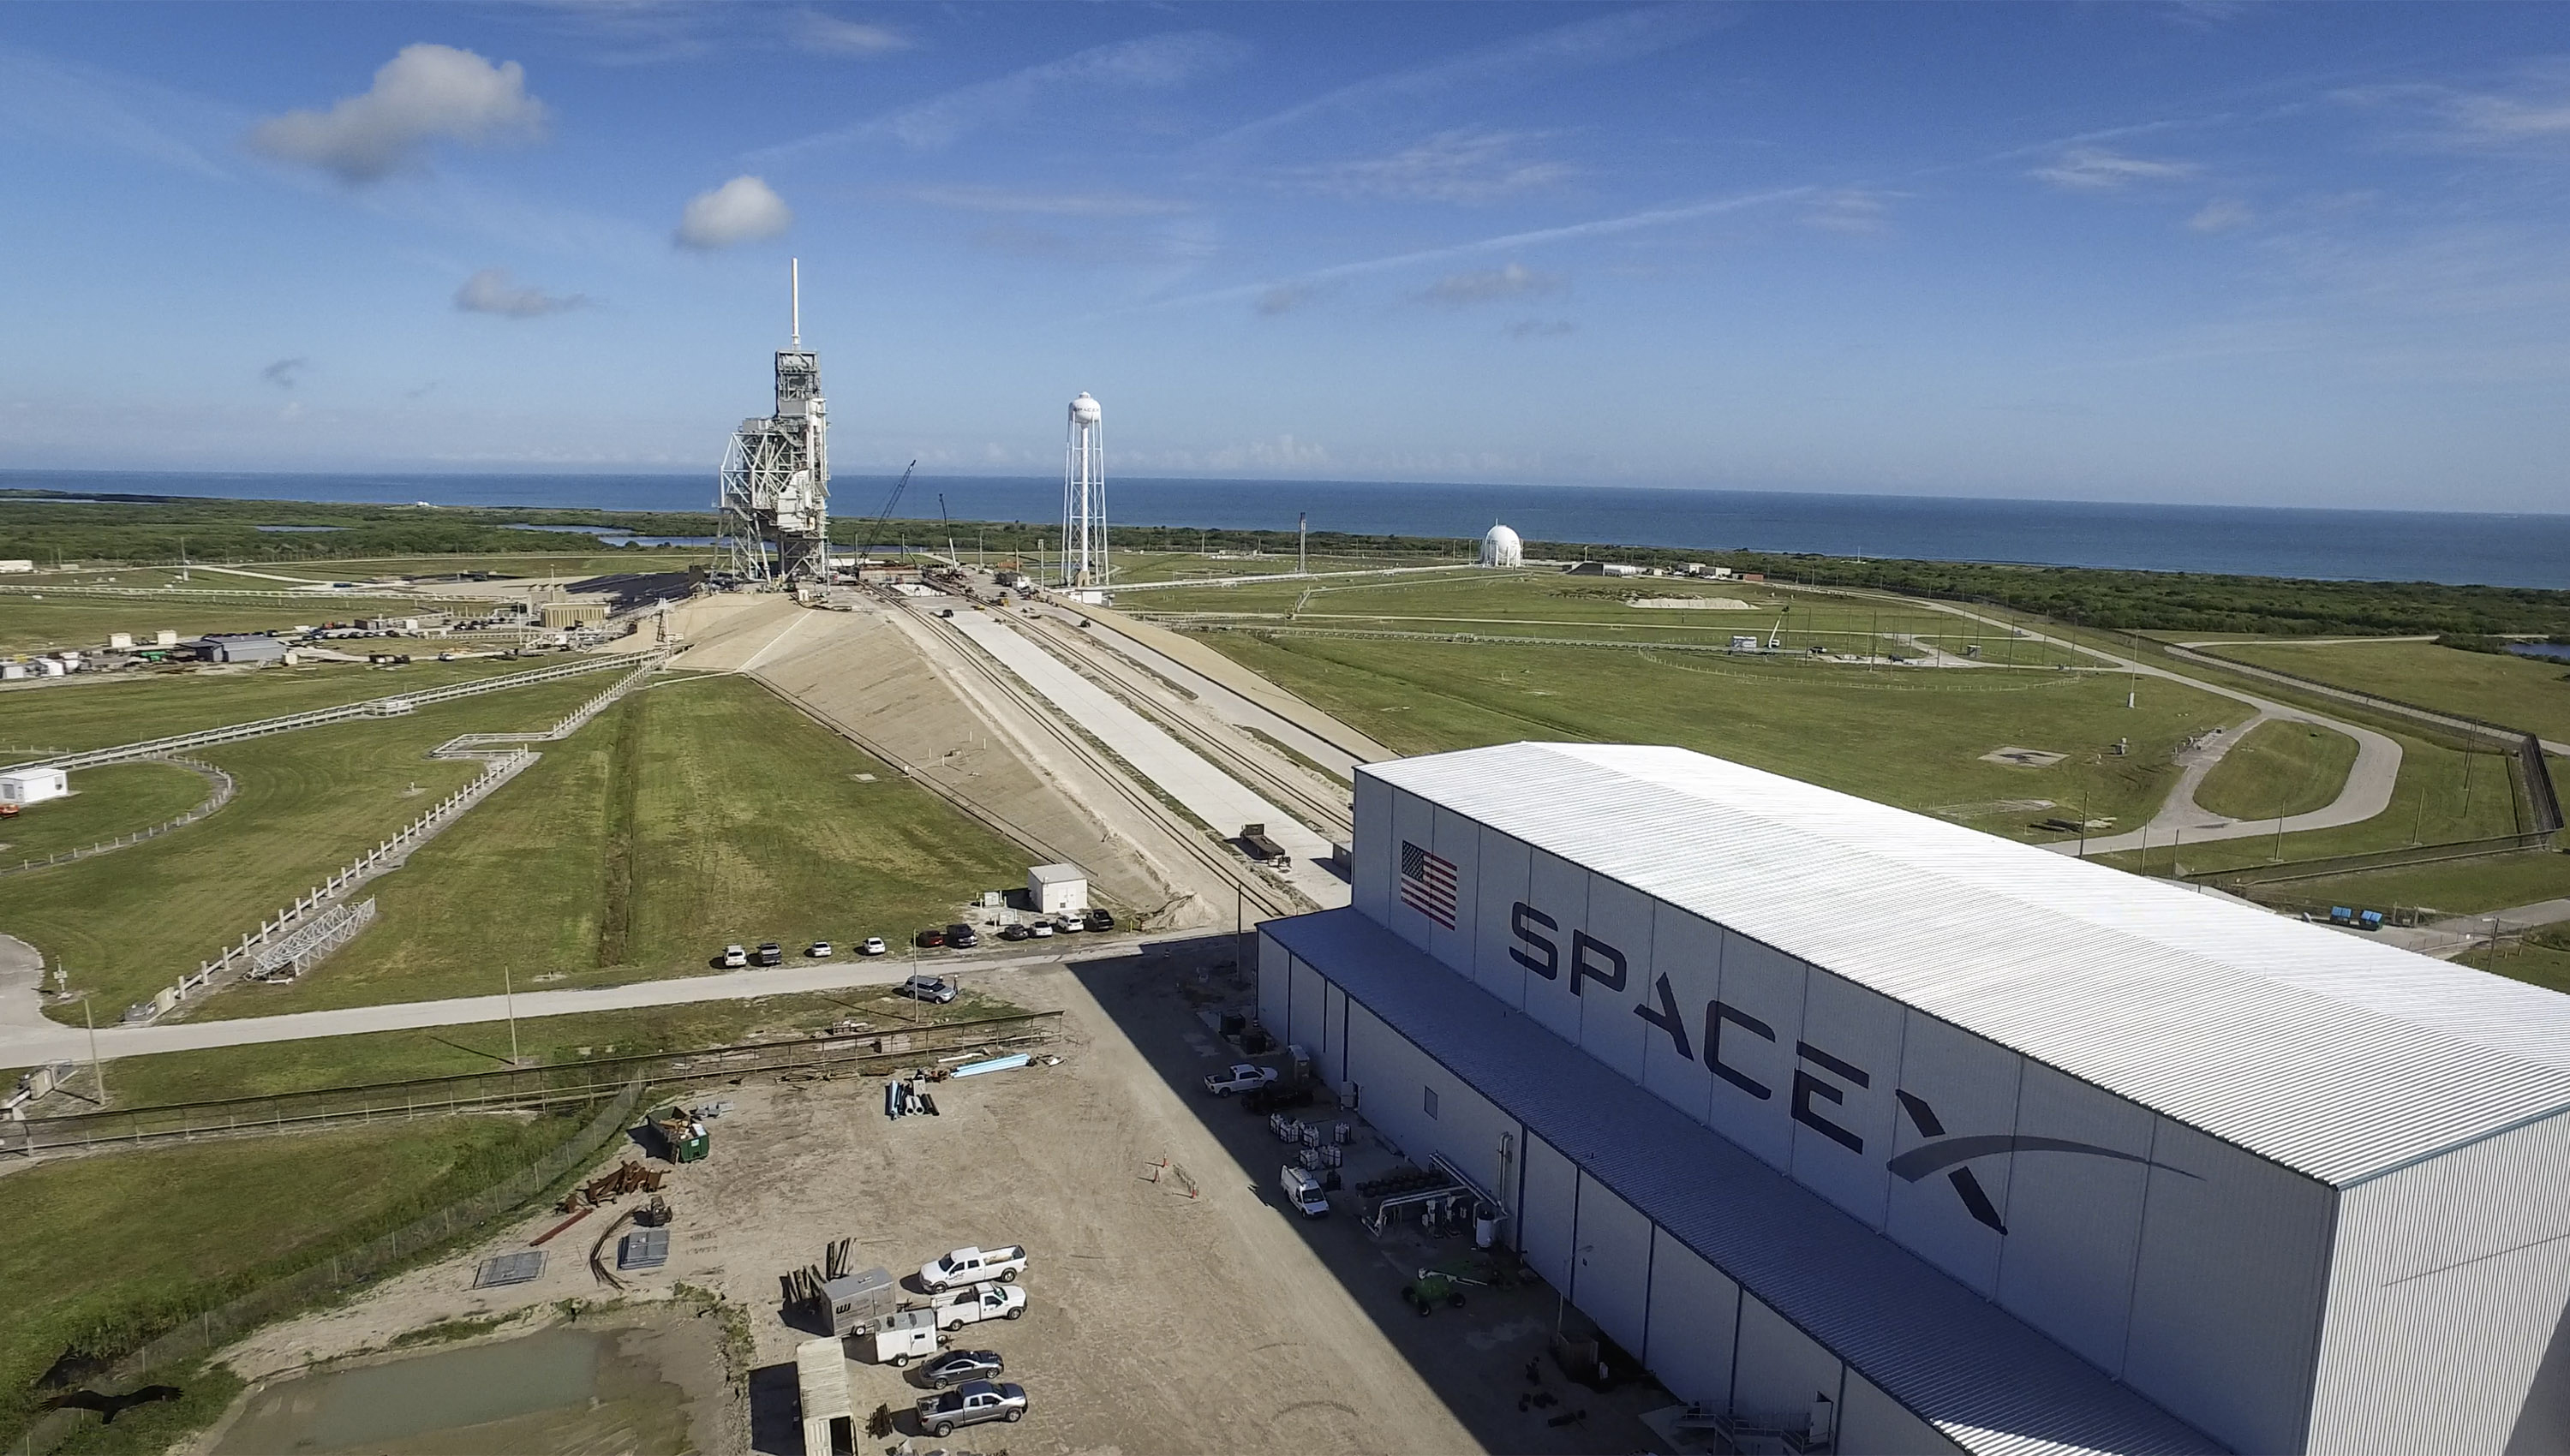 SpaceX's Falcon 9 Rocket Stands Atop Historic NASA Launchpad for 1st Time